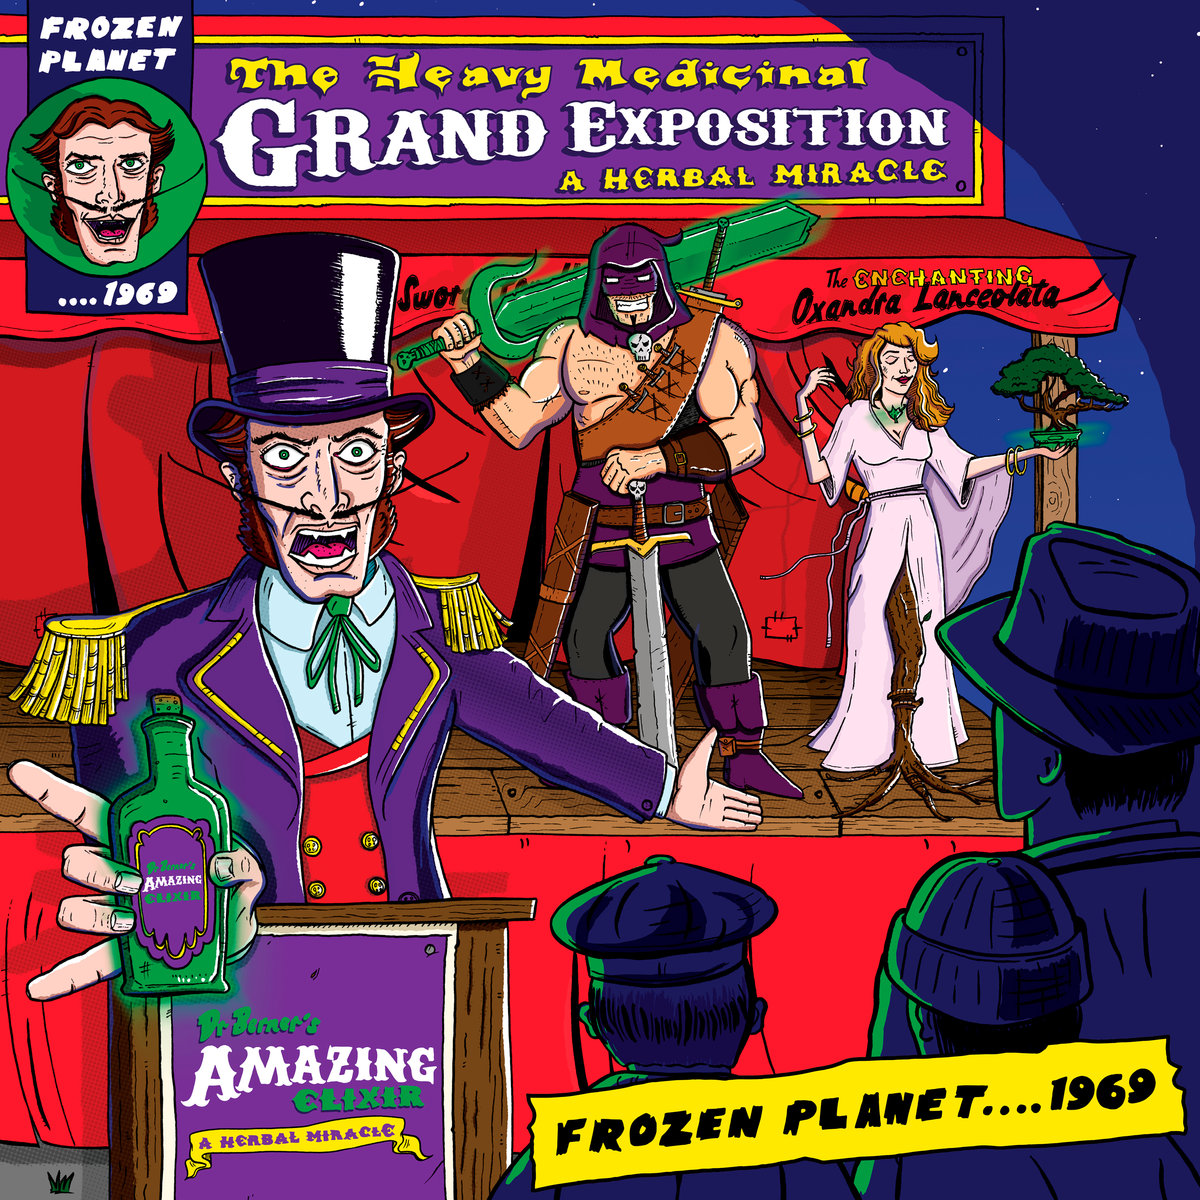 The Heavy Medicinal Grand Expo_Album Cover